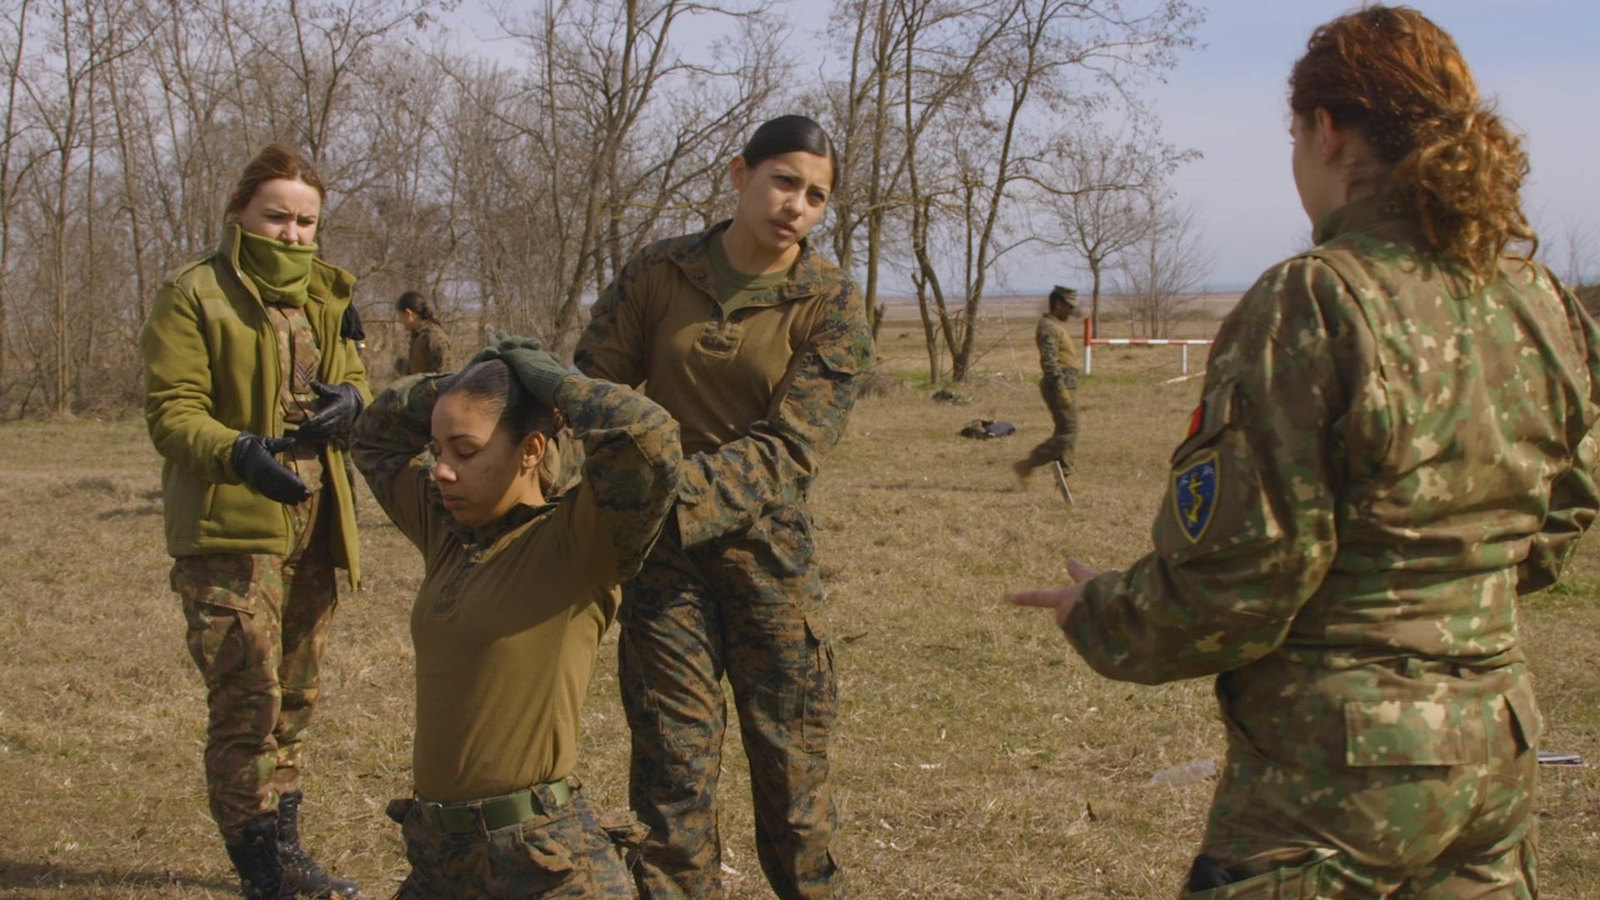 CAPU MIDIA TRAINING AREA, Romania (March 9, 2018) A U.S. Marine assigned to the Female Engagement Team (FET), 26th Marine Expeditionary Unit (MEU), and the Romanian FET conduct detainee handling during bi-lateral training at Capu Midia Training Area, Roma